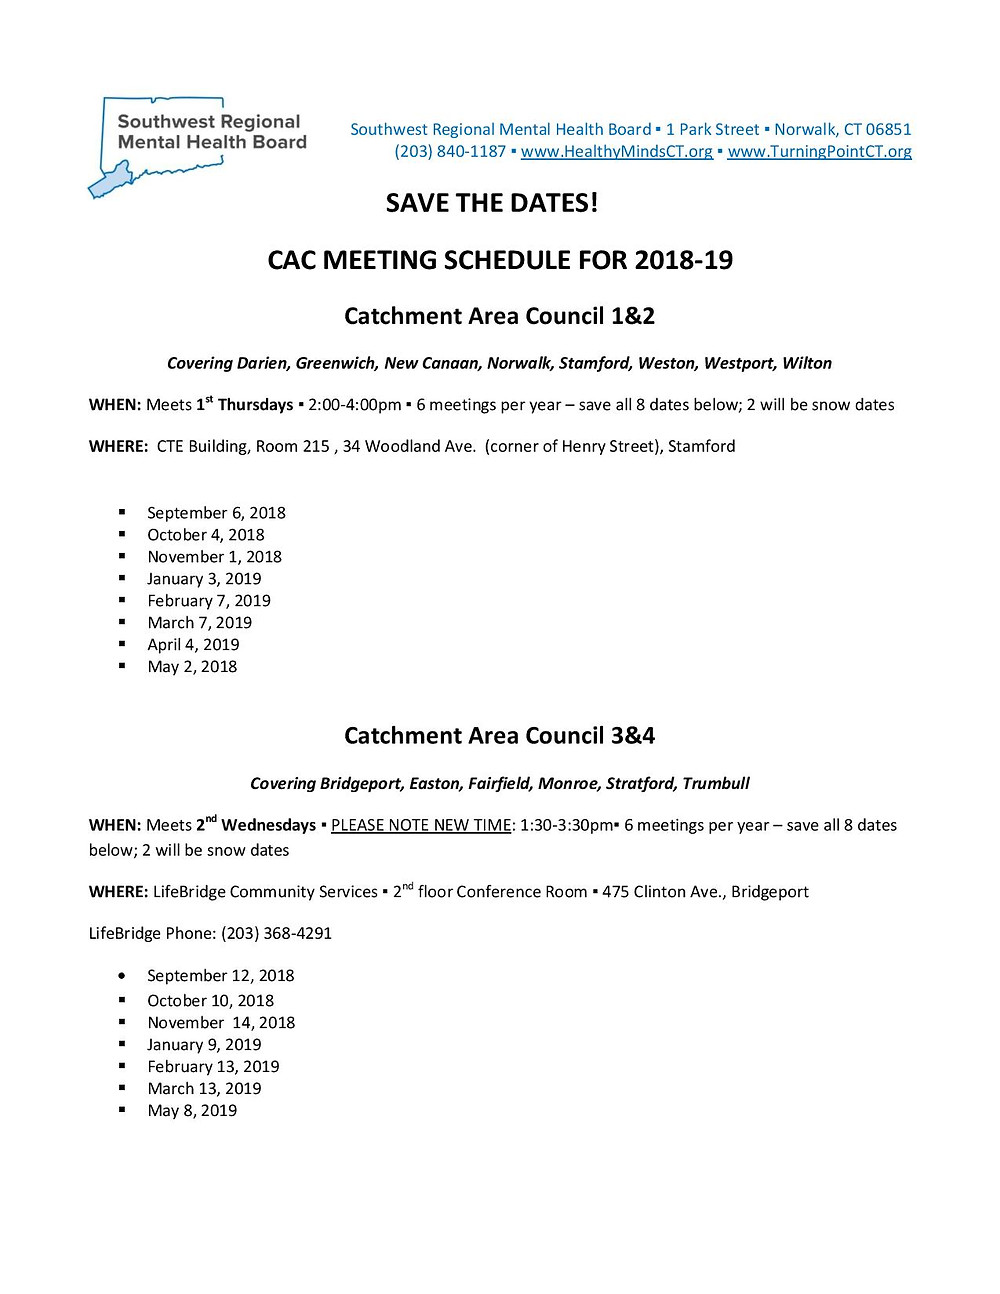 2018-2019 CAC Meeting Schedule